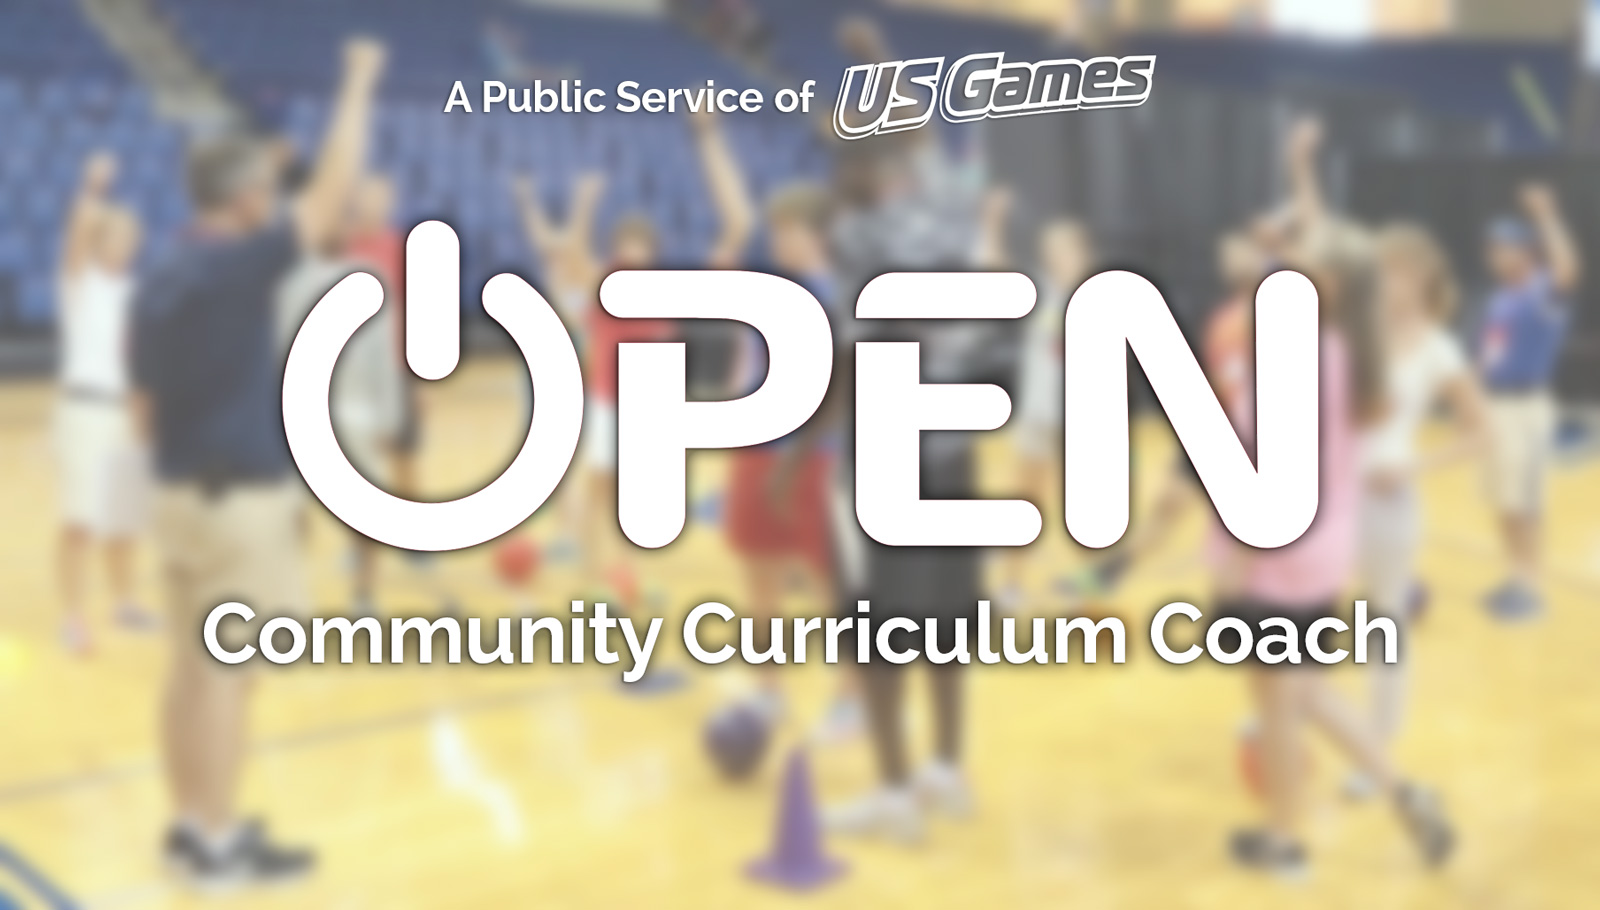 What's Next?OPEN Community Curriculum Coach Development